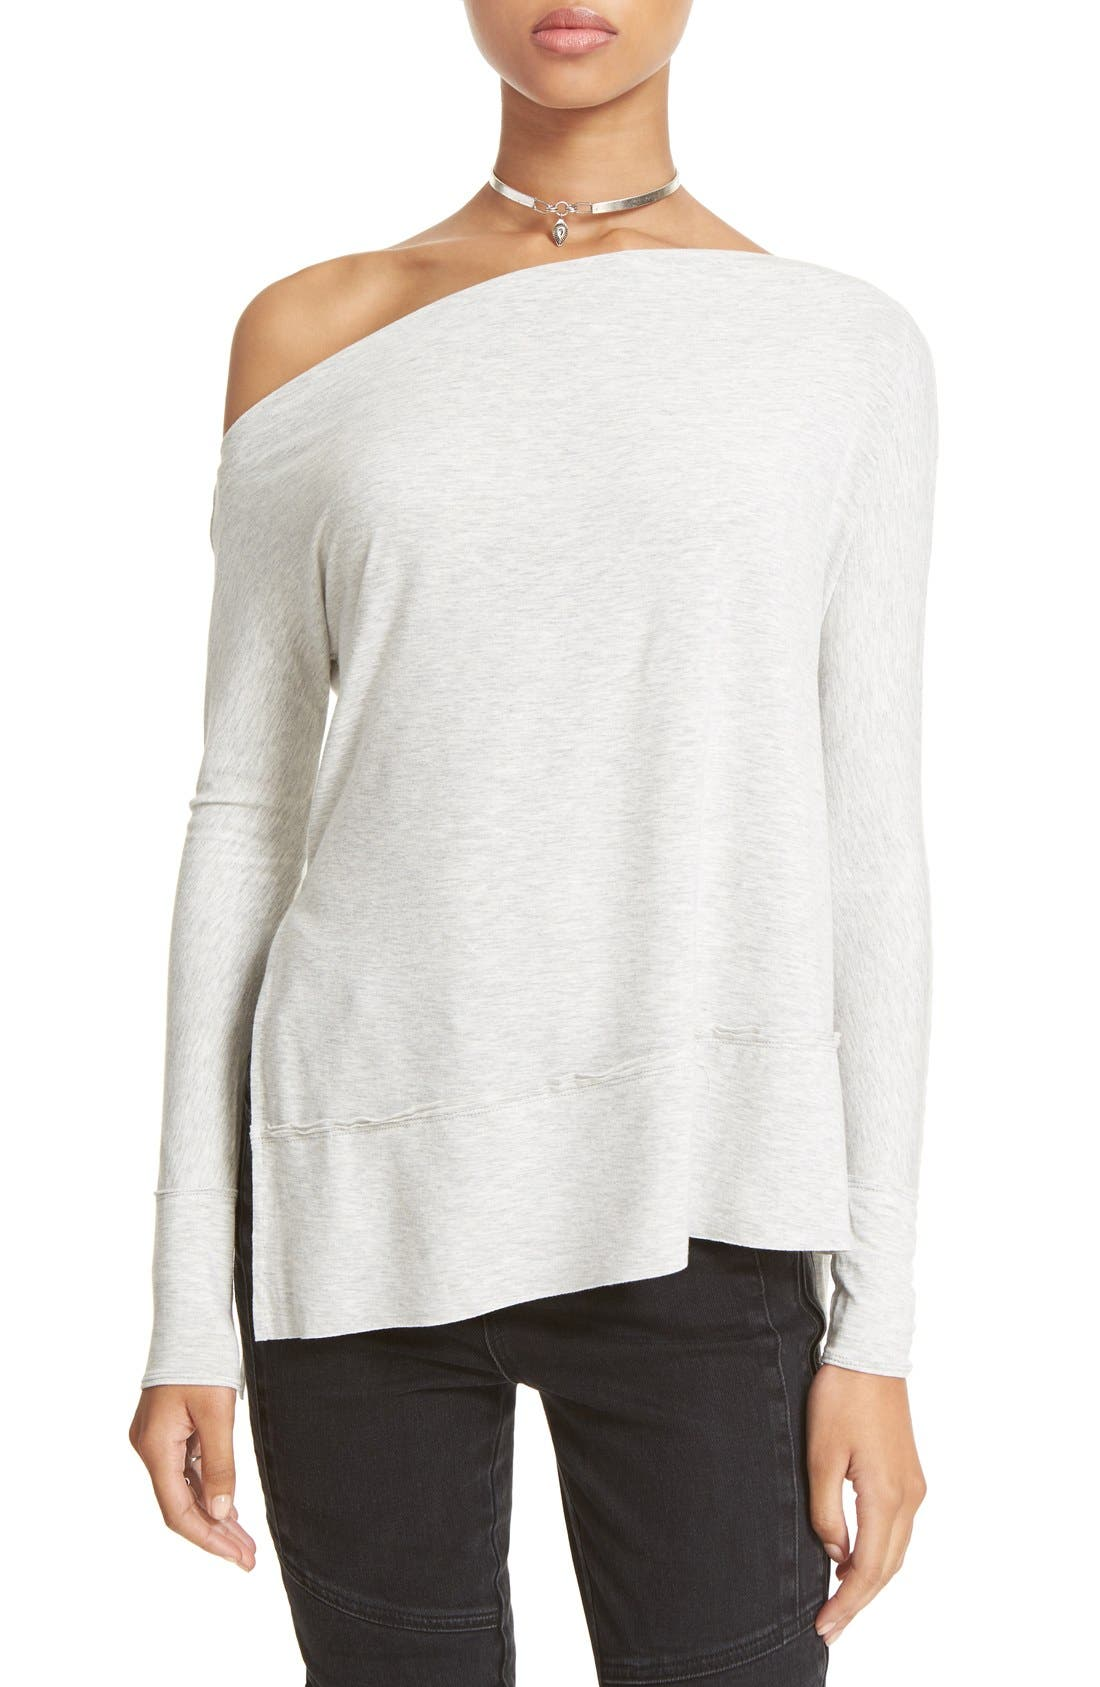 Alternate Image 1 Selected - Free People 'Luna' Long Sleeve Tee